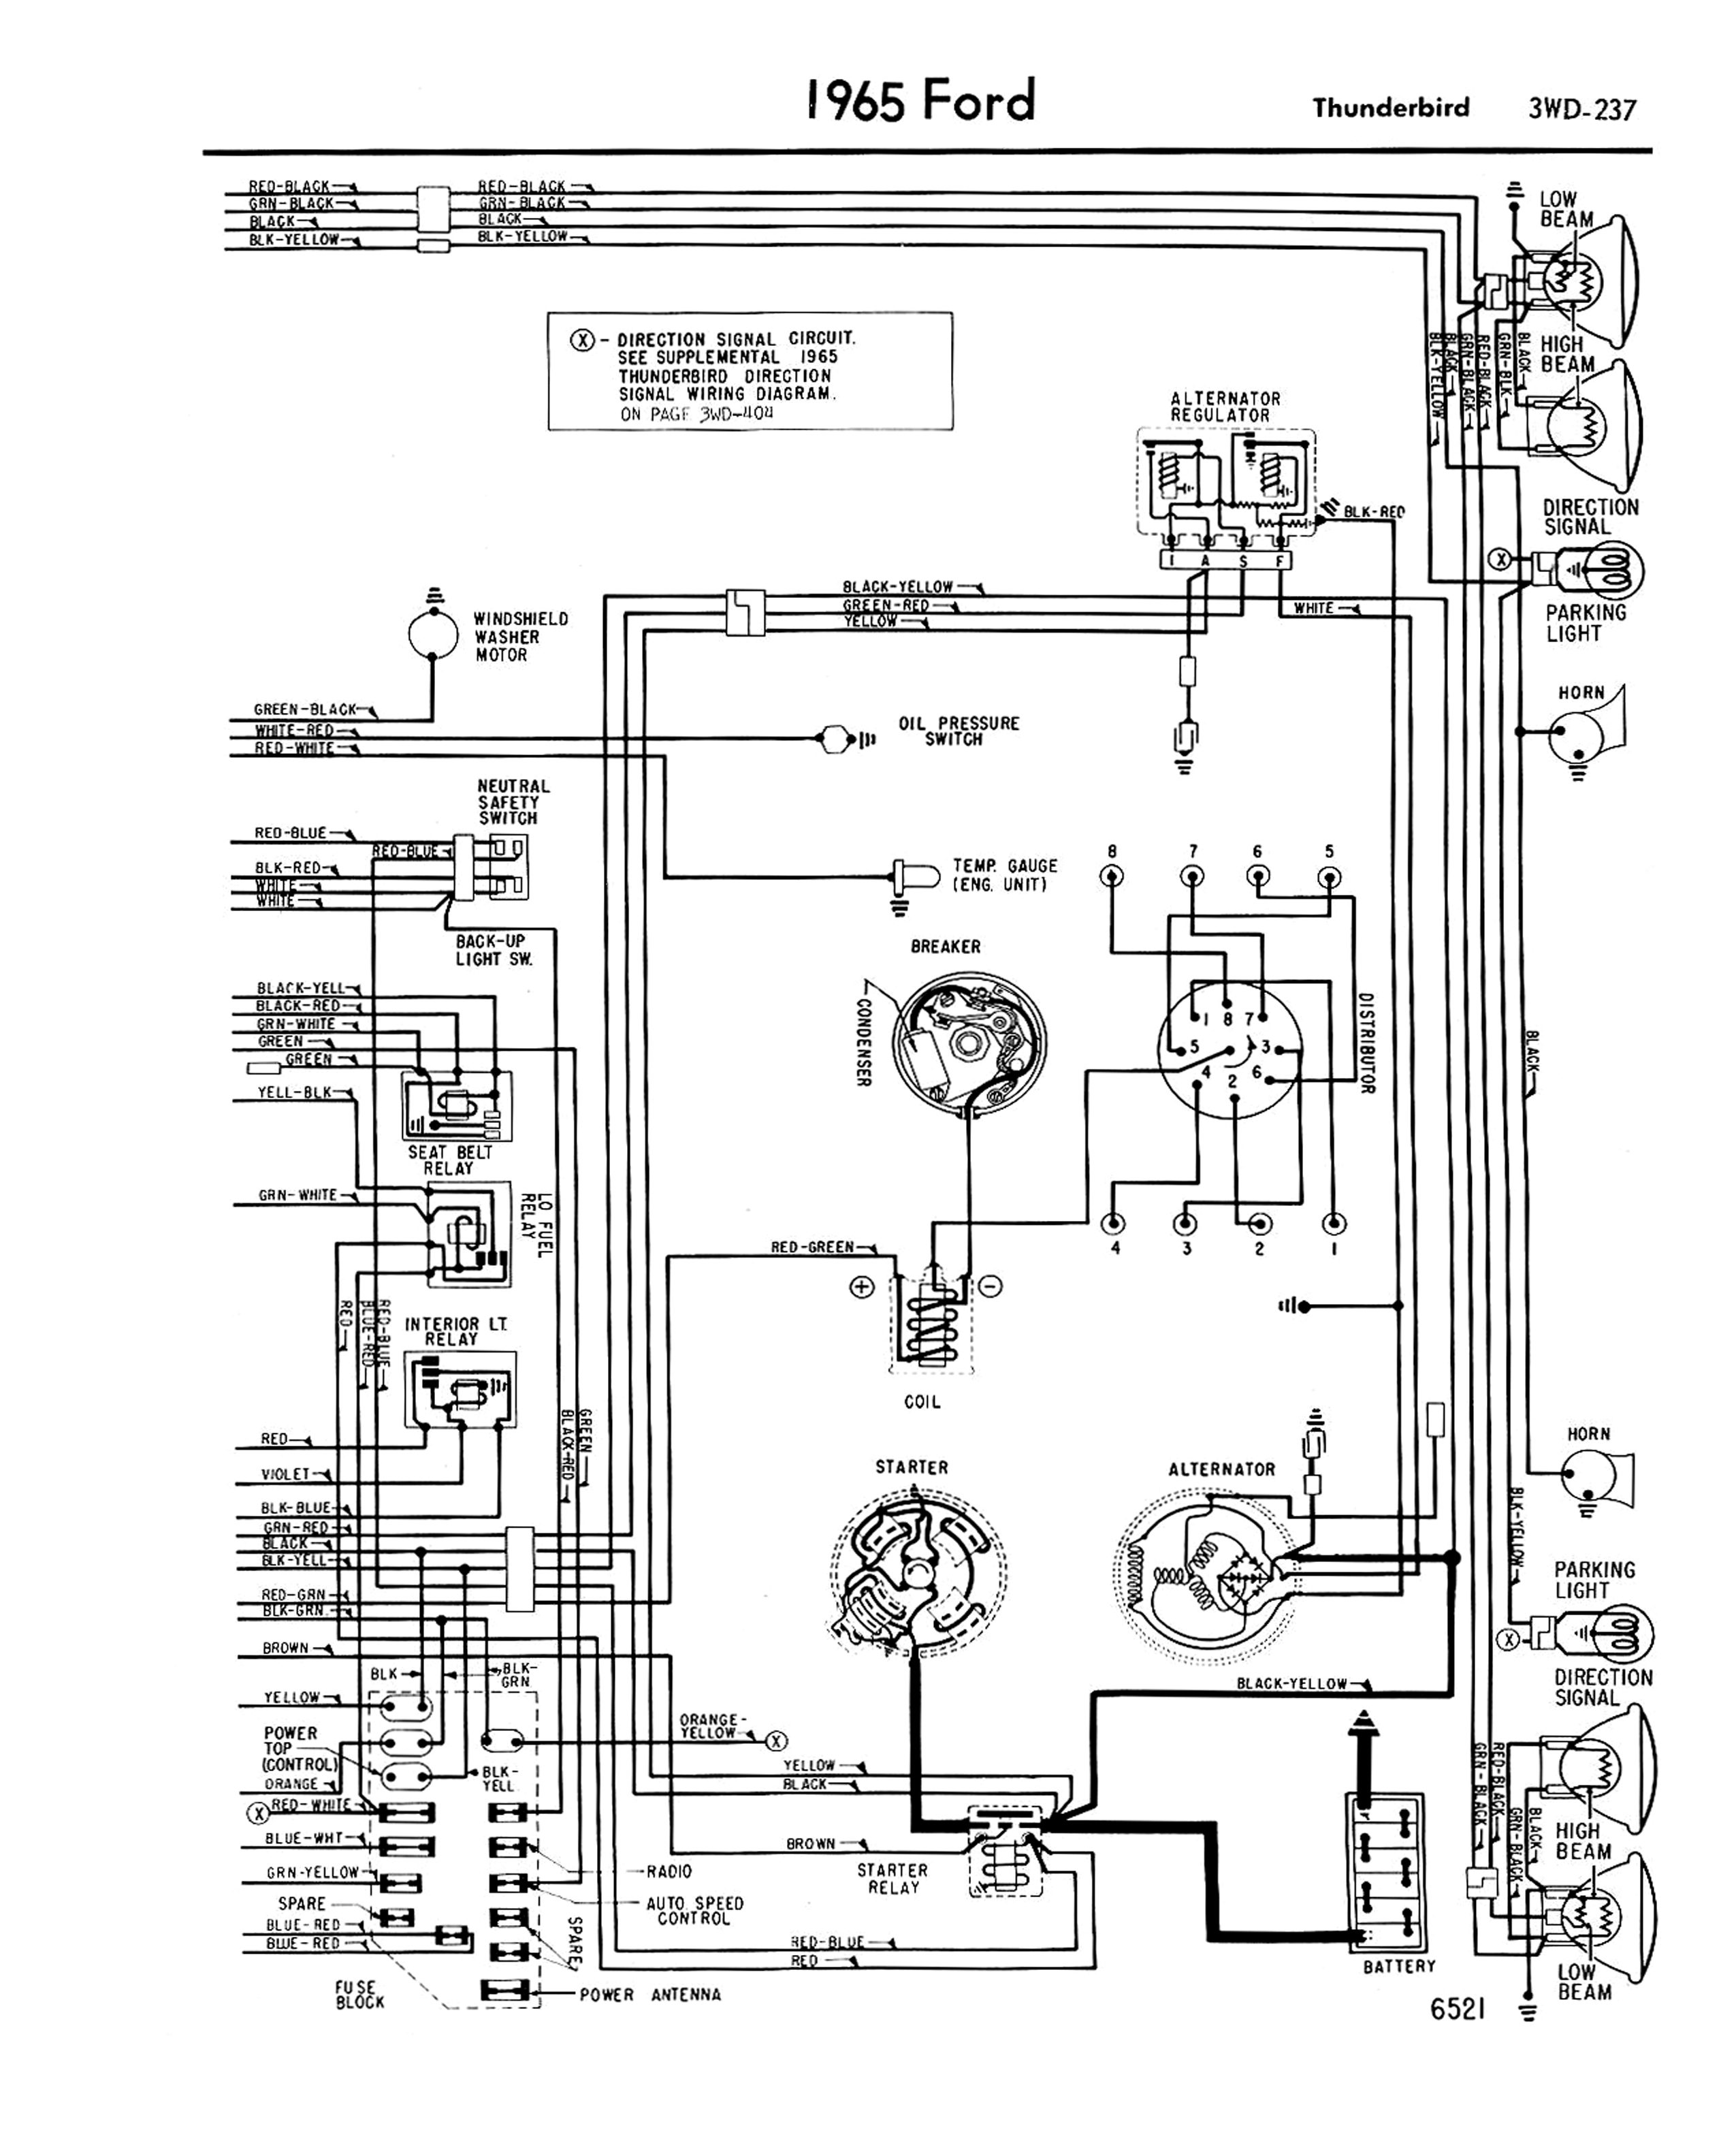 1975 Ford F100 Dash Wiring Diagram Libraries Electrical For A 65 Schematic Diagrams65 Thunderbird